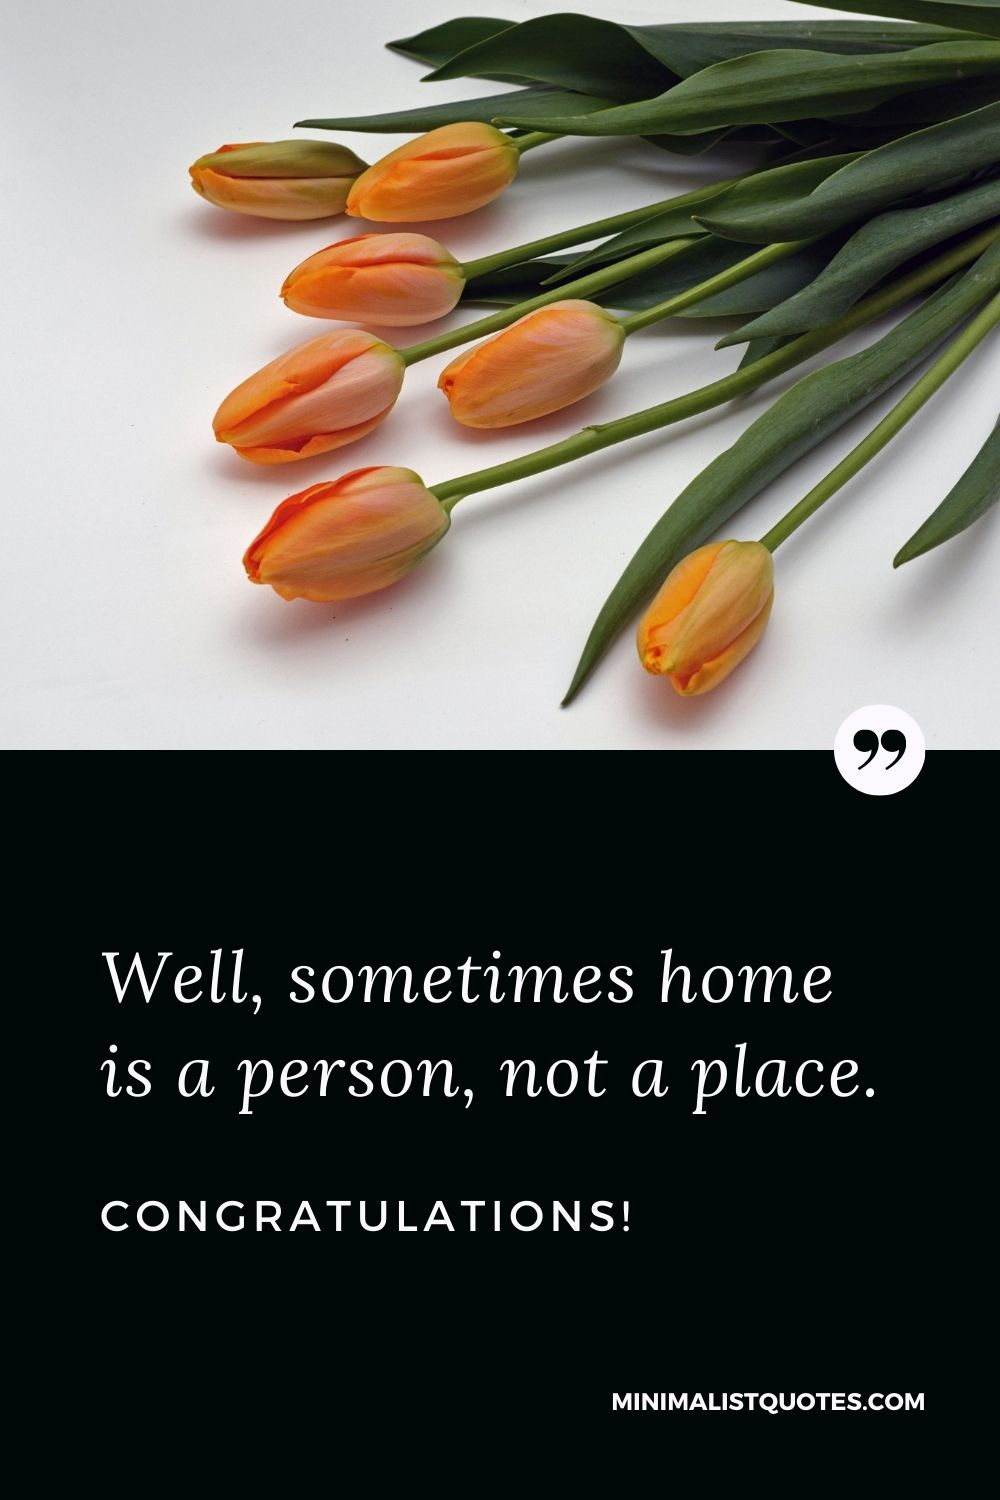 New Home Wish, Quote & Message With Image: Well, sometimes home is a person, not a place. Congratulations!